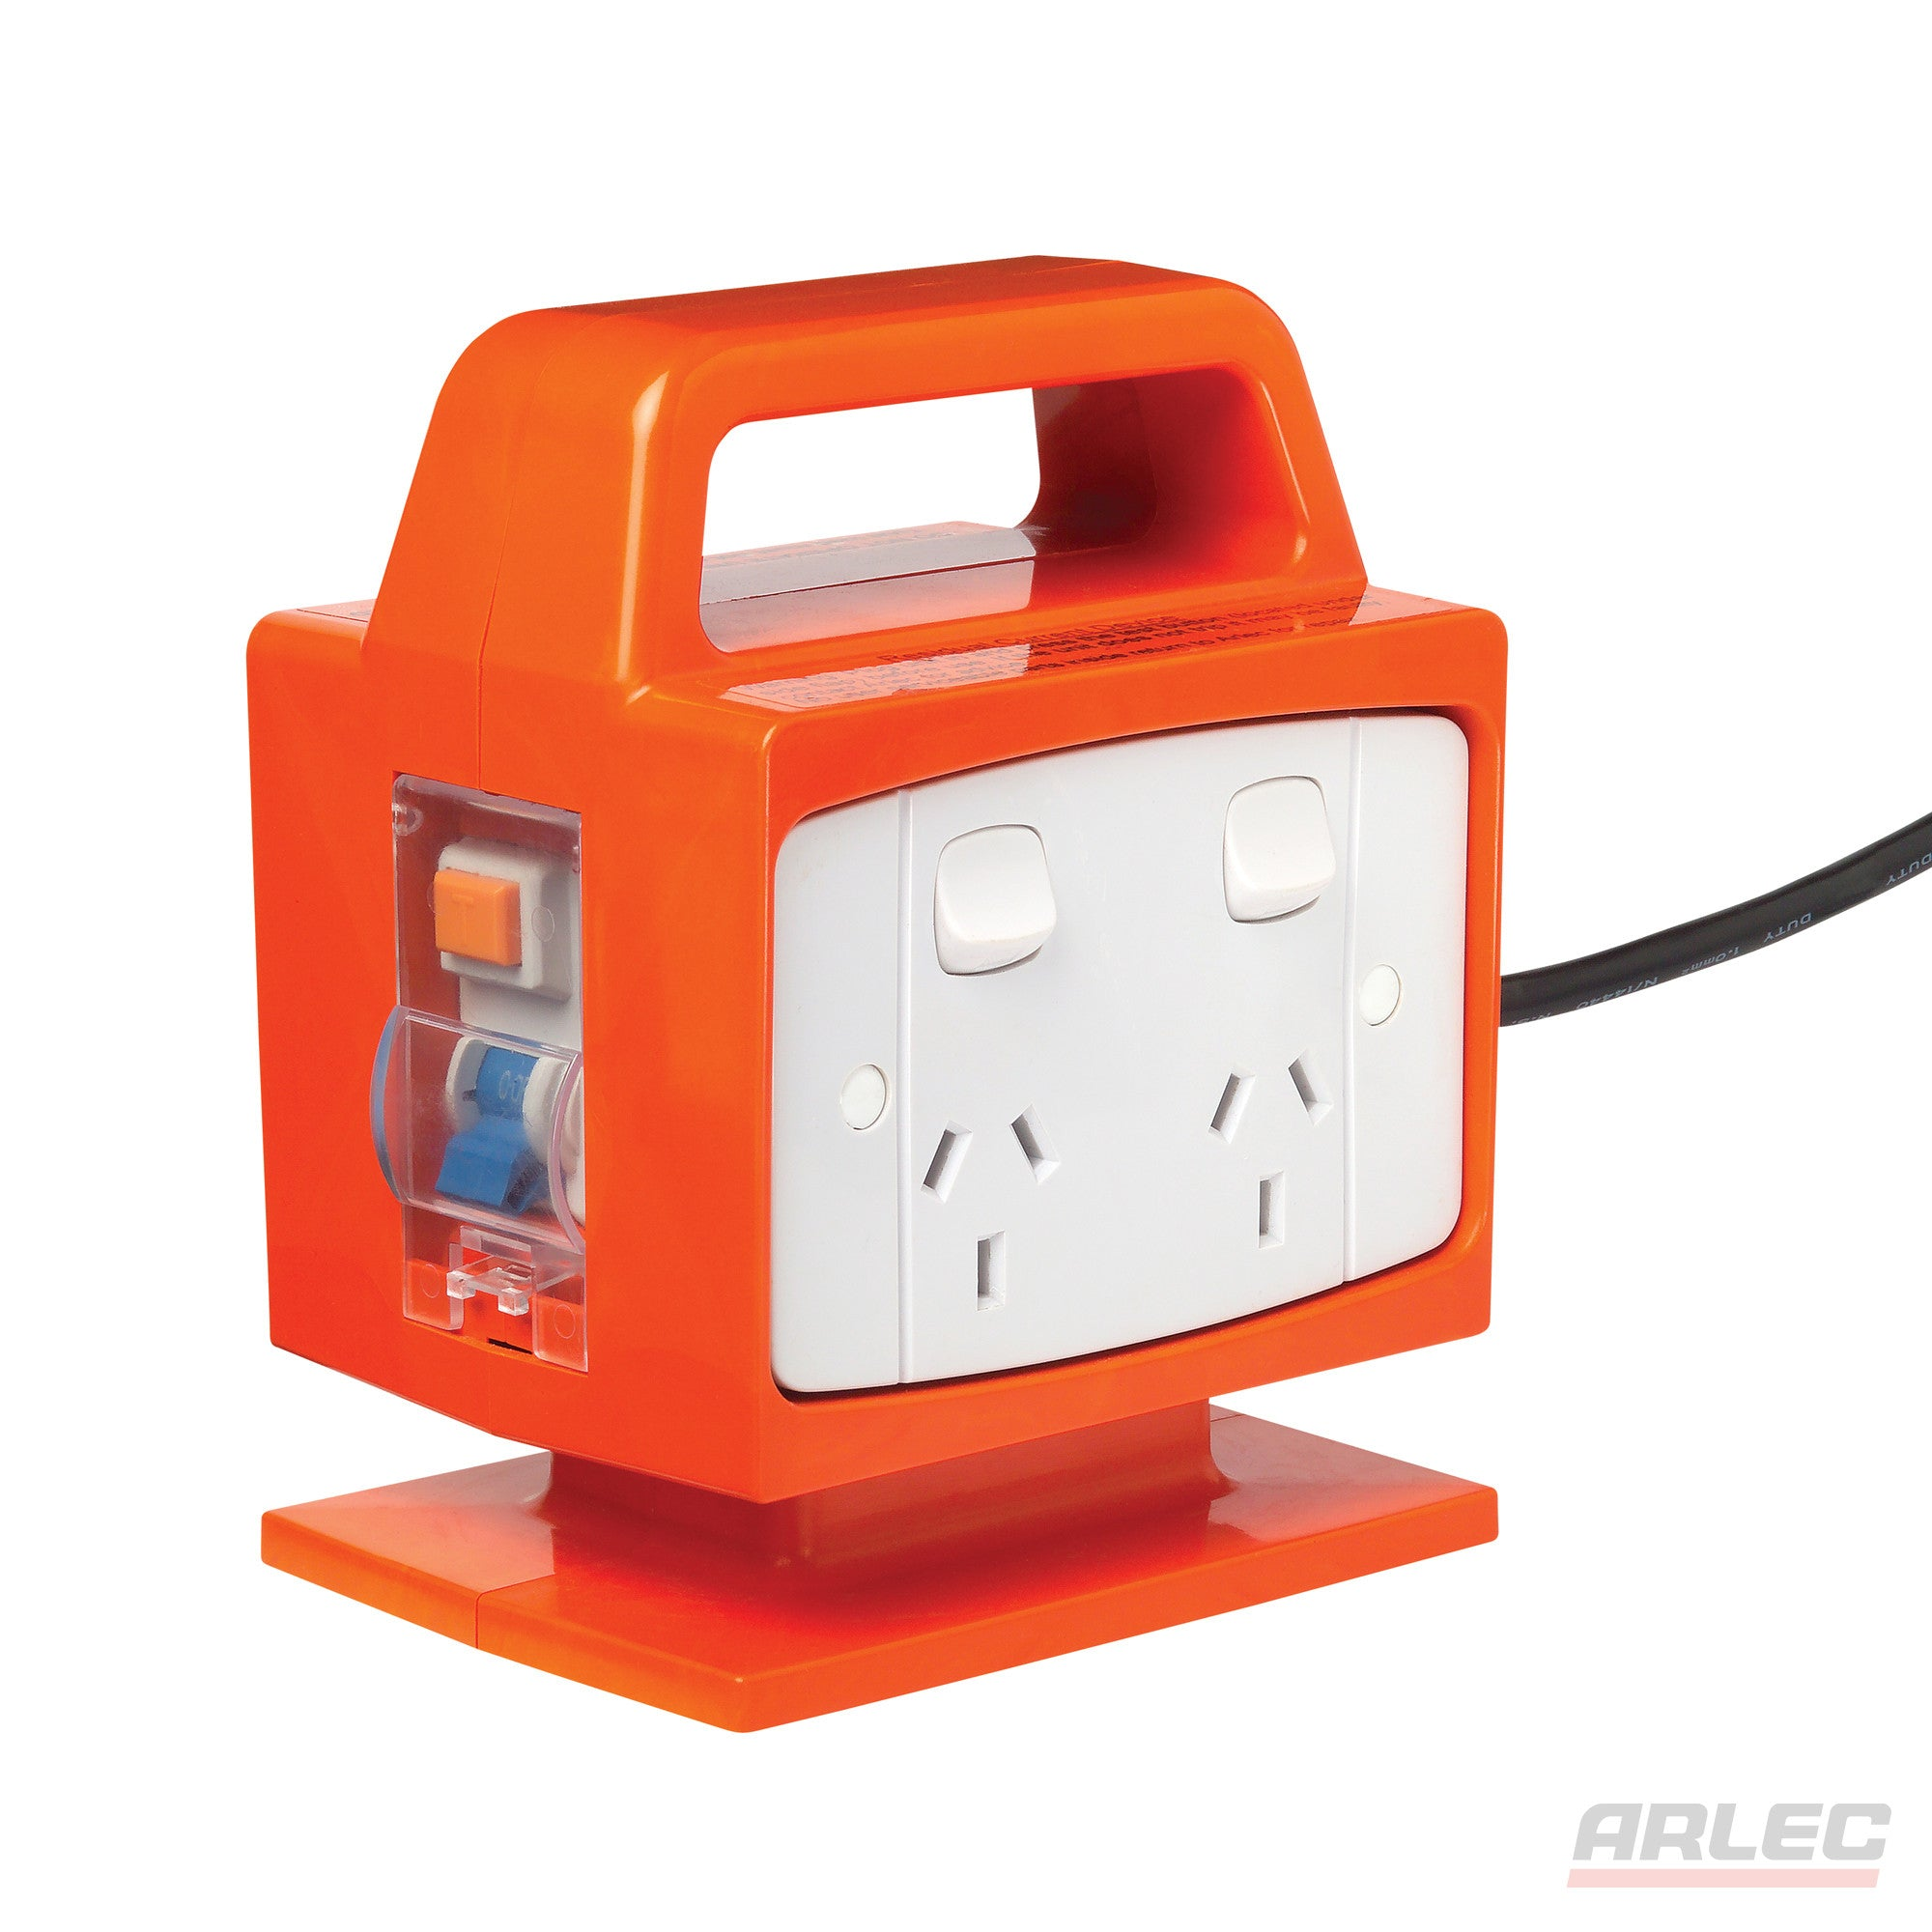 Arlec ARLEC Portable Power Block-Safety Switch 4 Outlet - PB94 - BNR Industrial